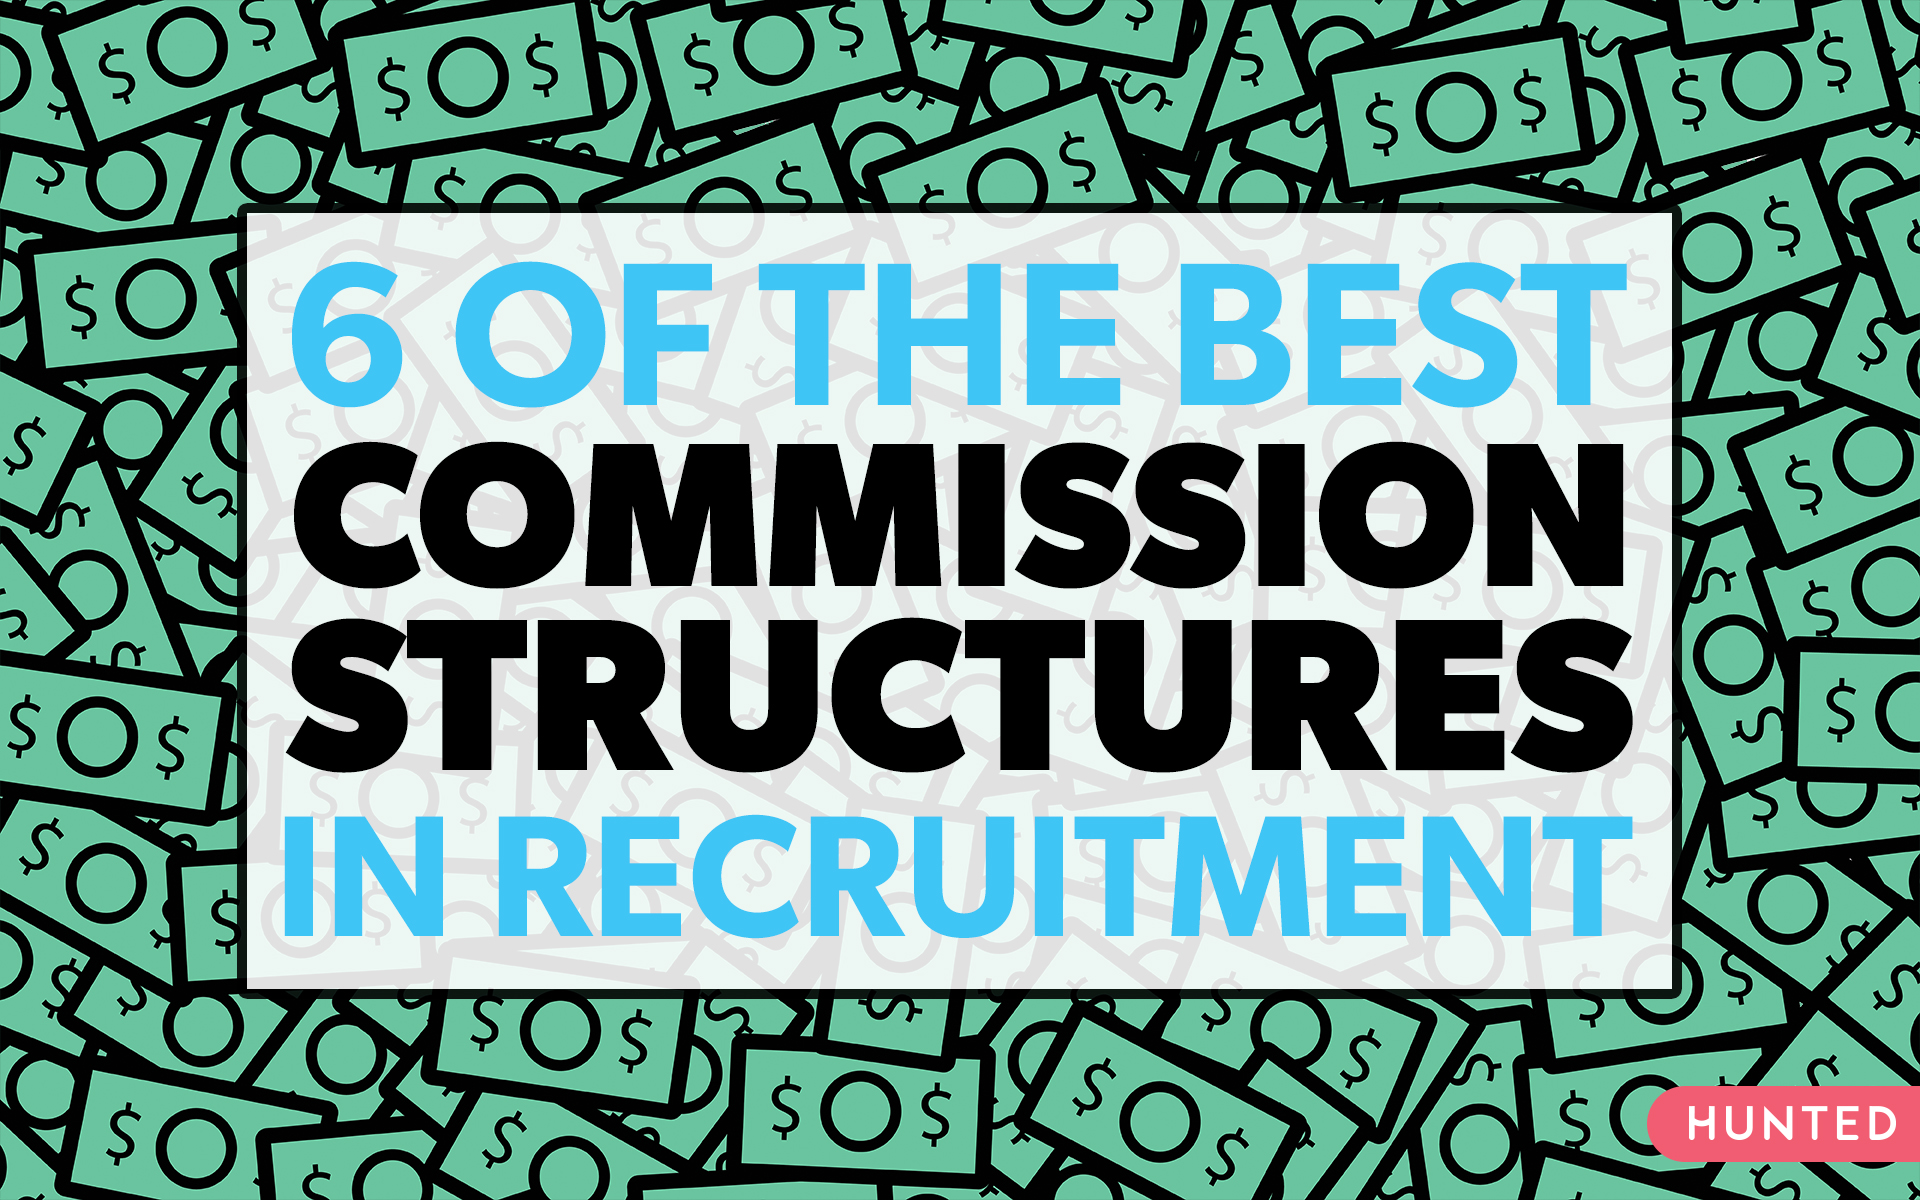 6 of the best commission structures